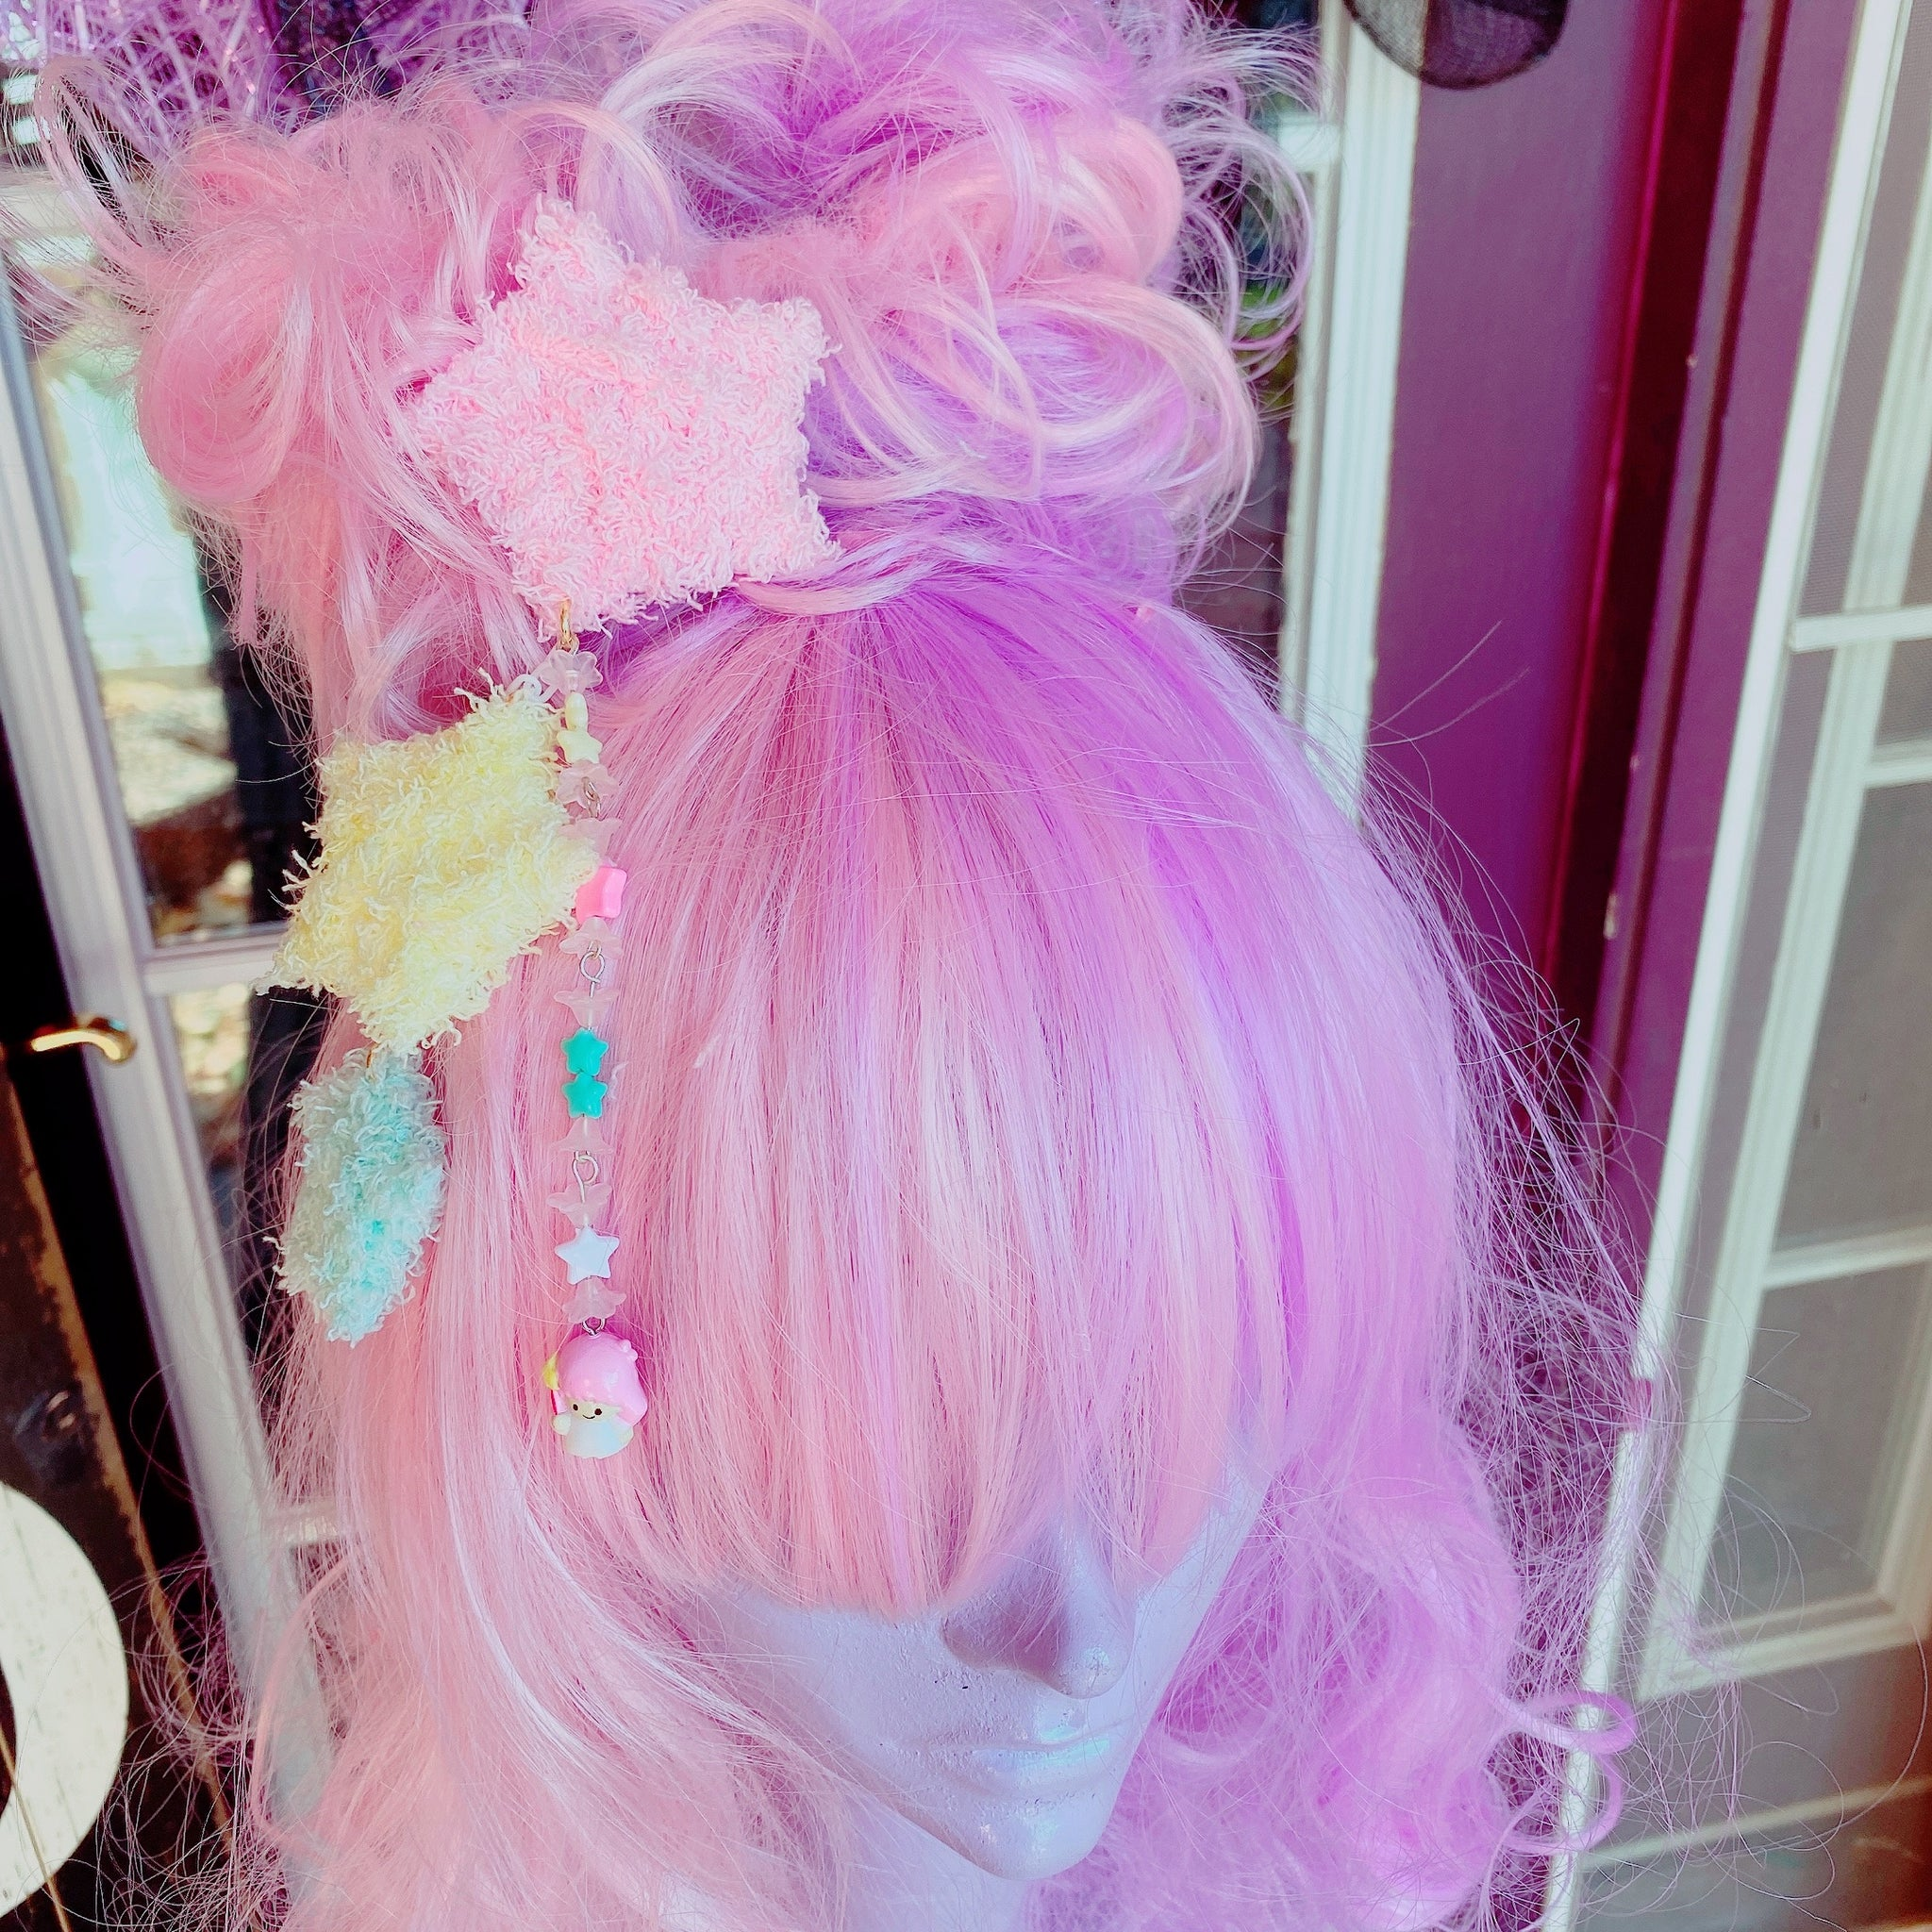 Little Twin Stars Fuzzy Star 2 Way Dangle Hair Clip Chocomint Inspired Pastel Fairy Kei Sweet Lolita Kawaii Stars